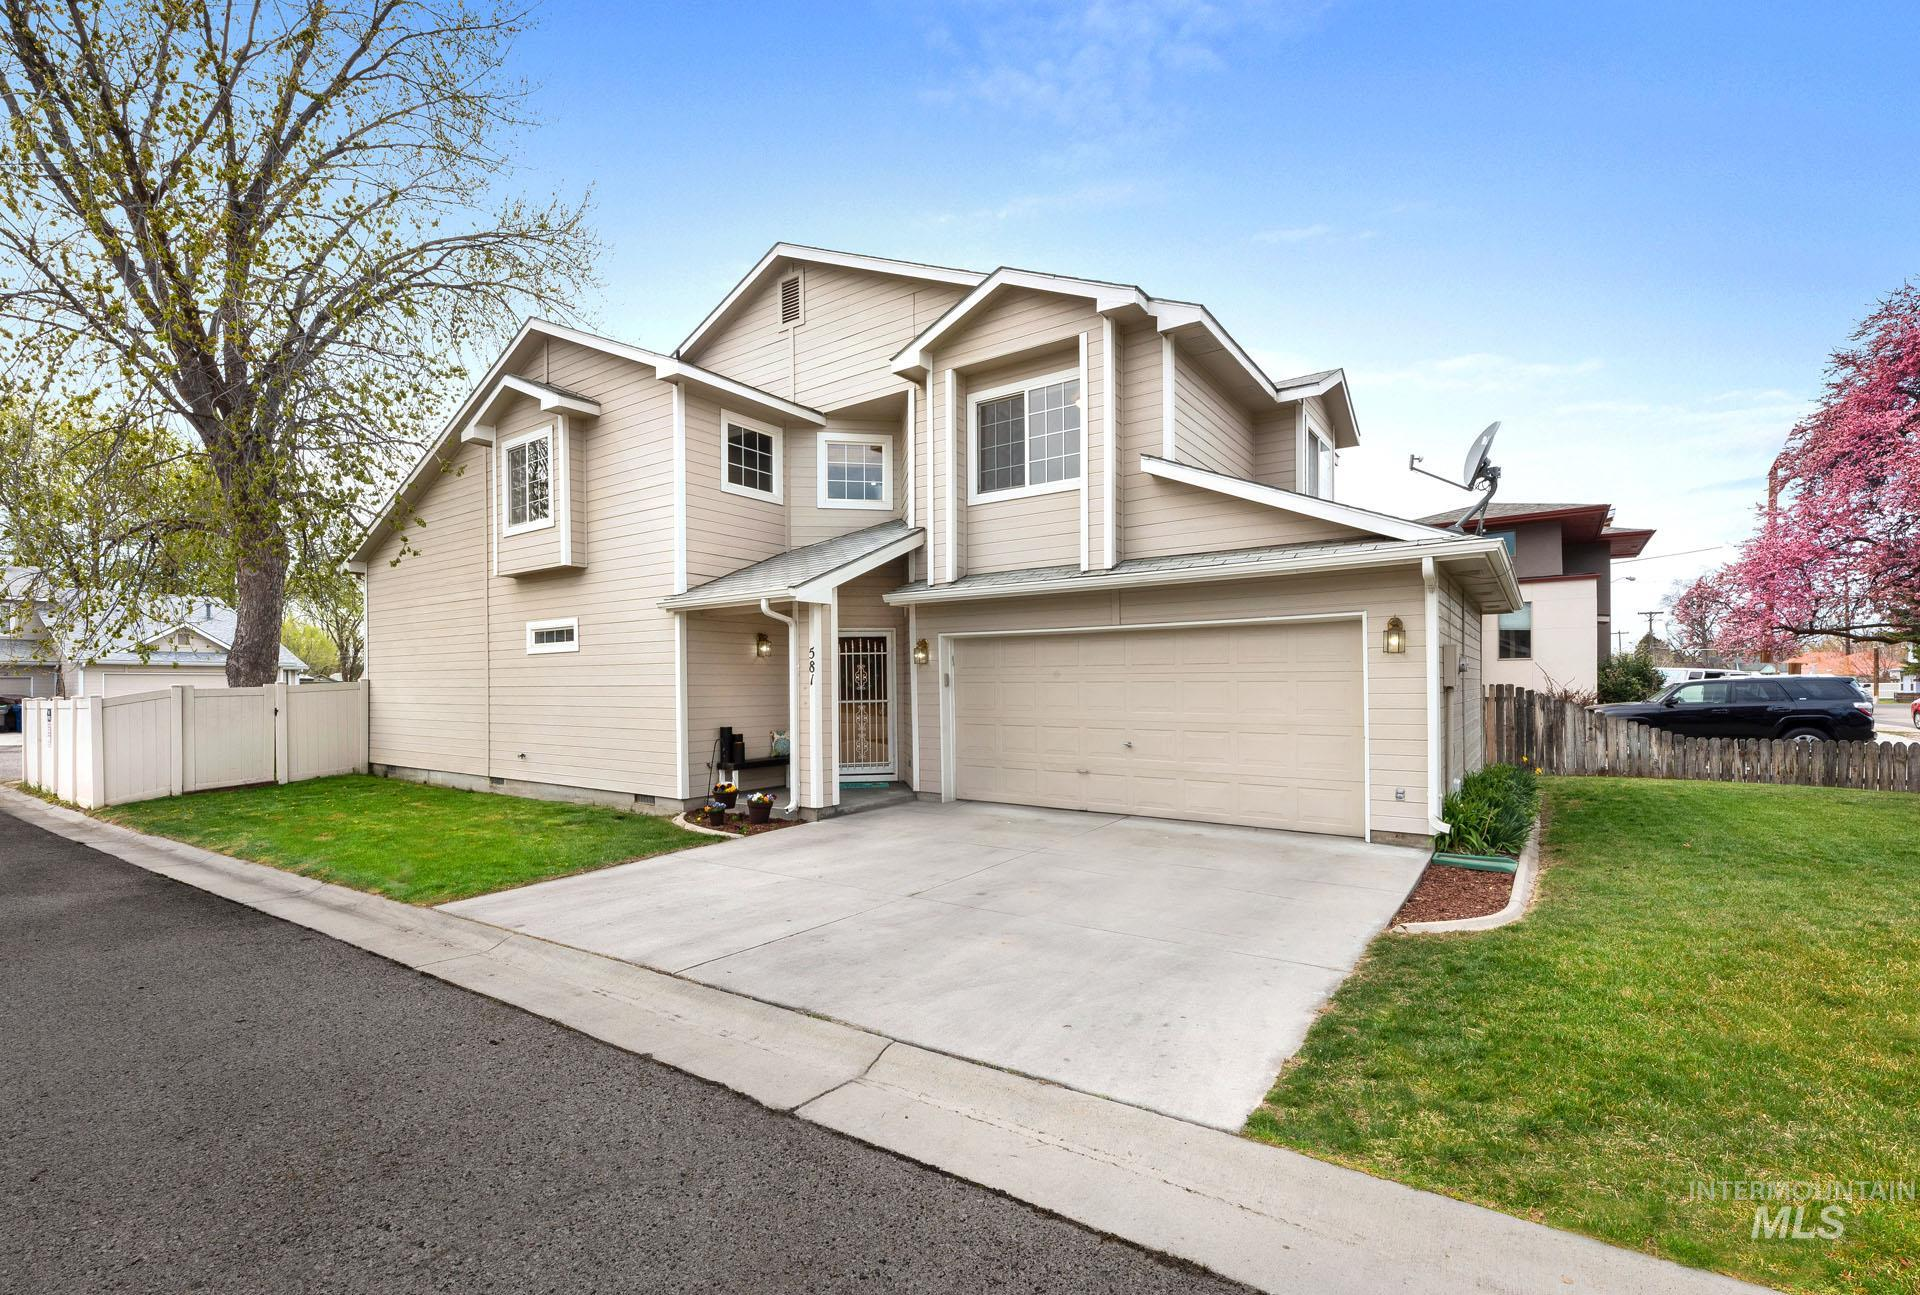 581 W WARREN ST Property Photo - Boise, ID real estate listing